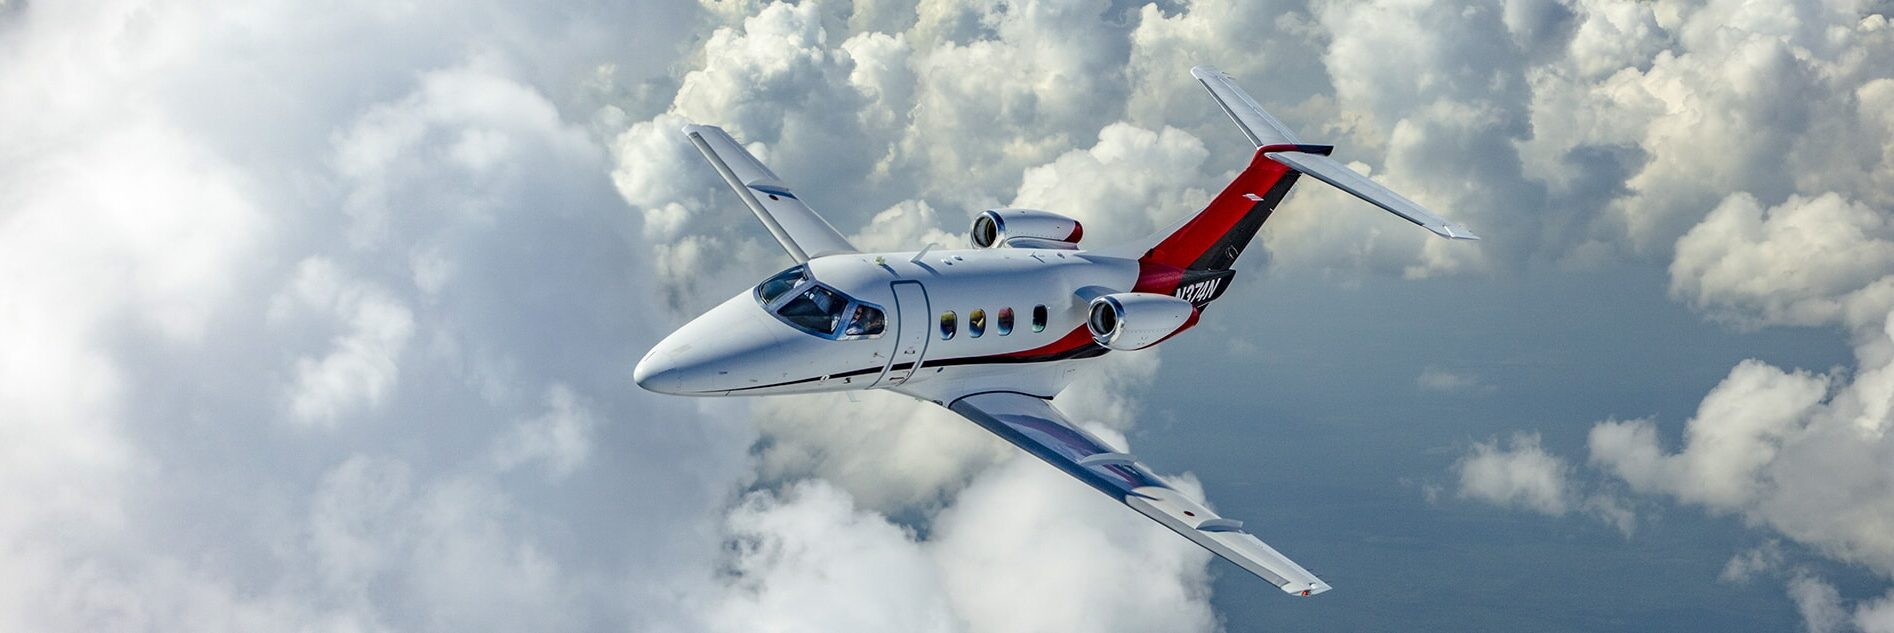 Embraer Phenom 100 Aerial White Clouds